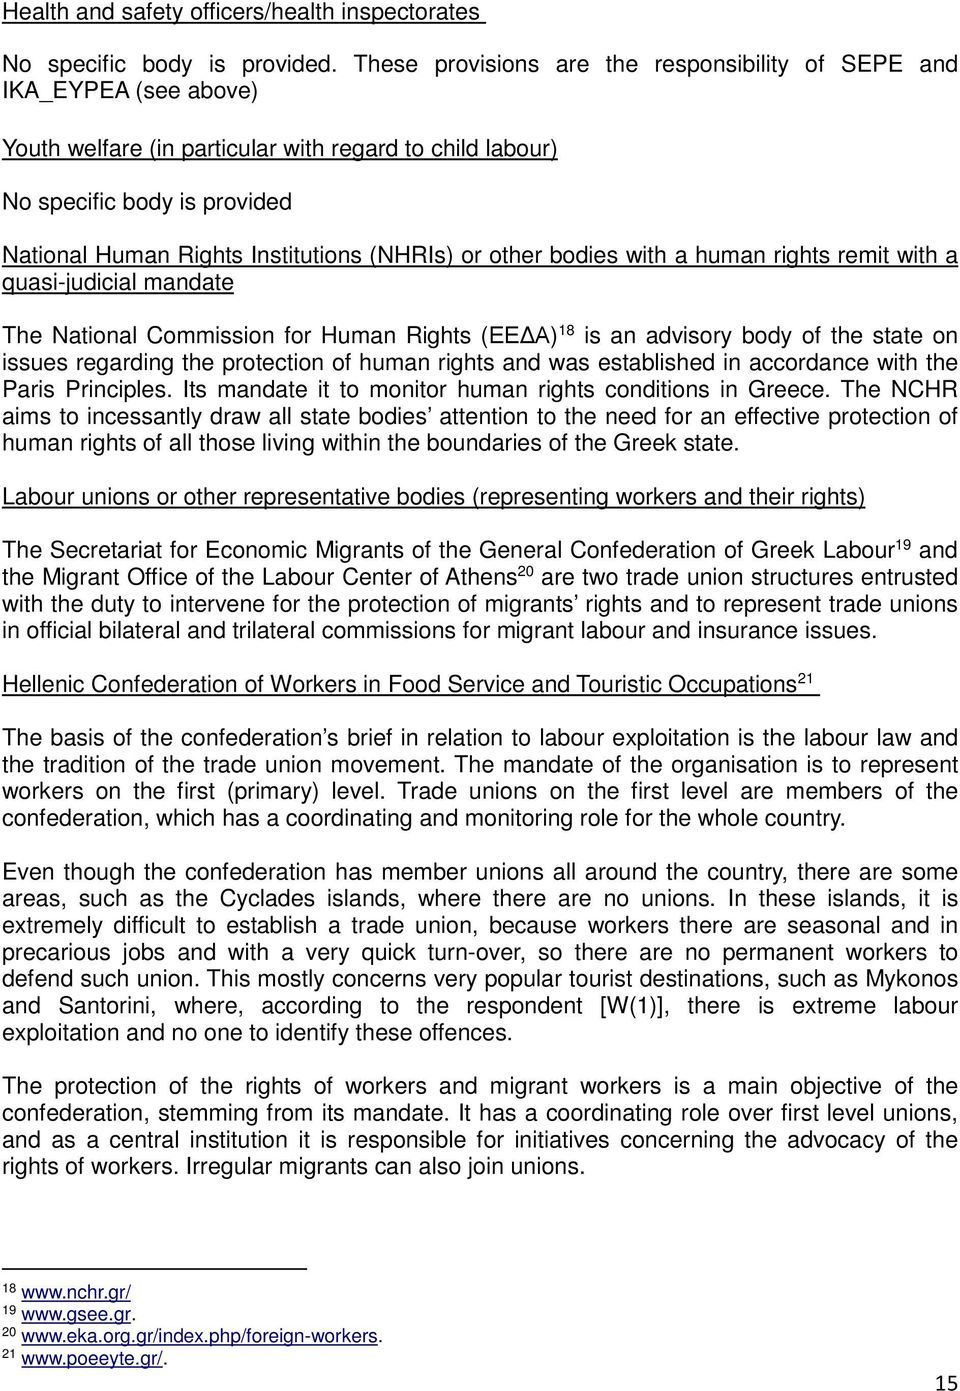 (NHRIs) or other bodies with a human rights remit with a quasi-judicial mandate The National Commission for Human Rights (ΕΕΔΑ) 18 is an advisory body of the state on issues regarding the protection